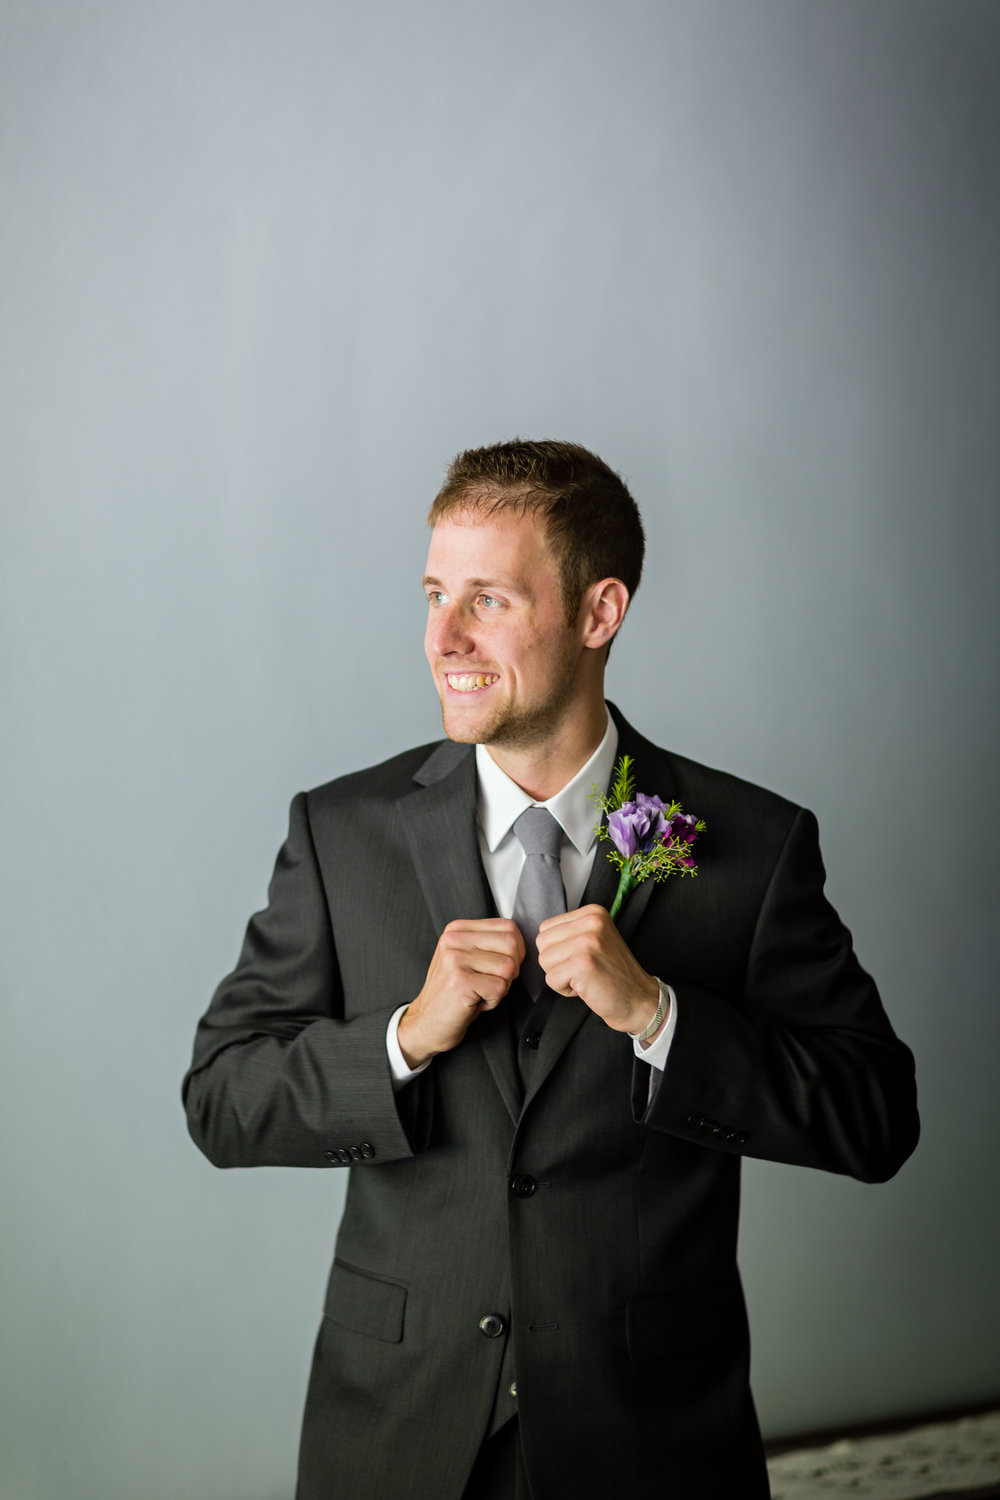 Charcoal Grey Groom Tie - Pittsburgh Wedding Venue - Duquesne University Wedding